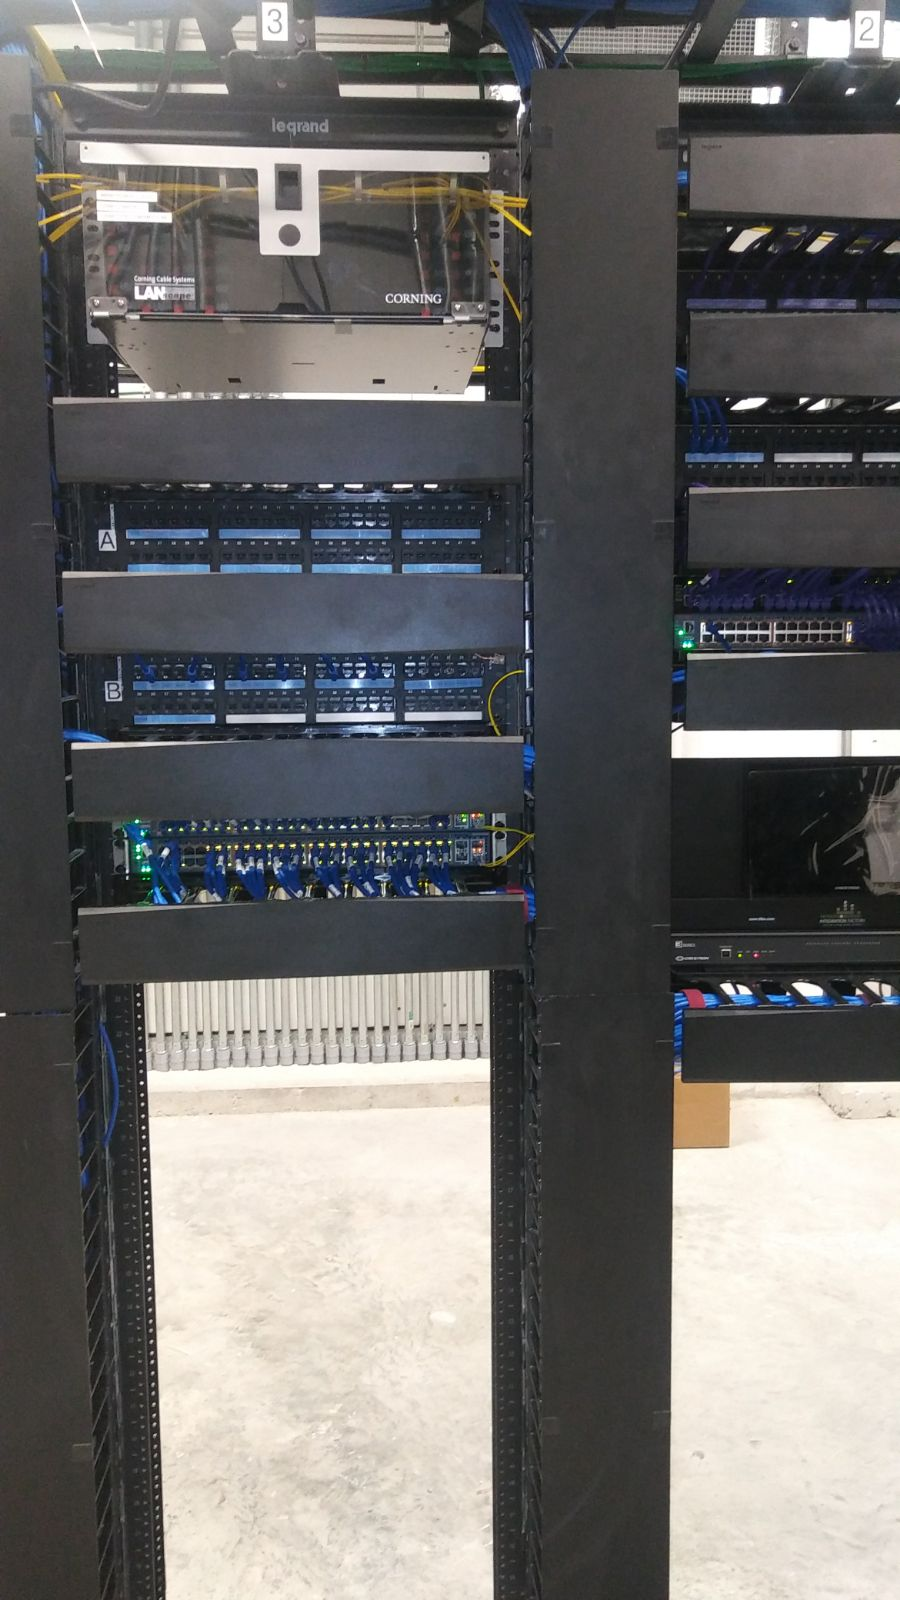 Customers Low Voltage Systems Structured Wiring Enclosures Legrand Img 20180125 Wa0029